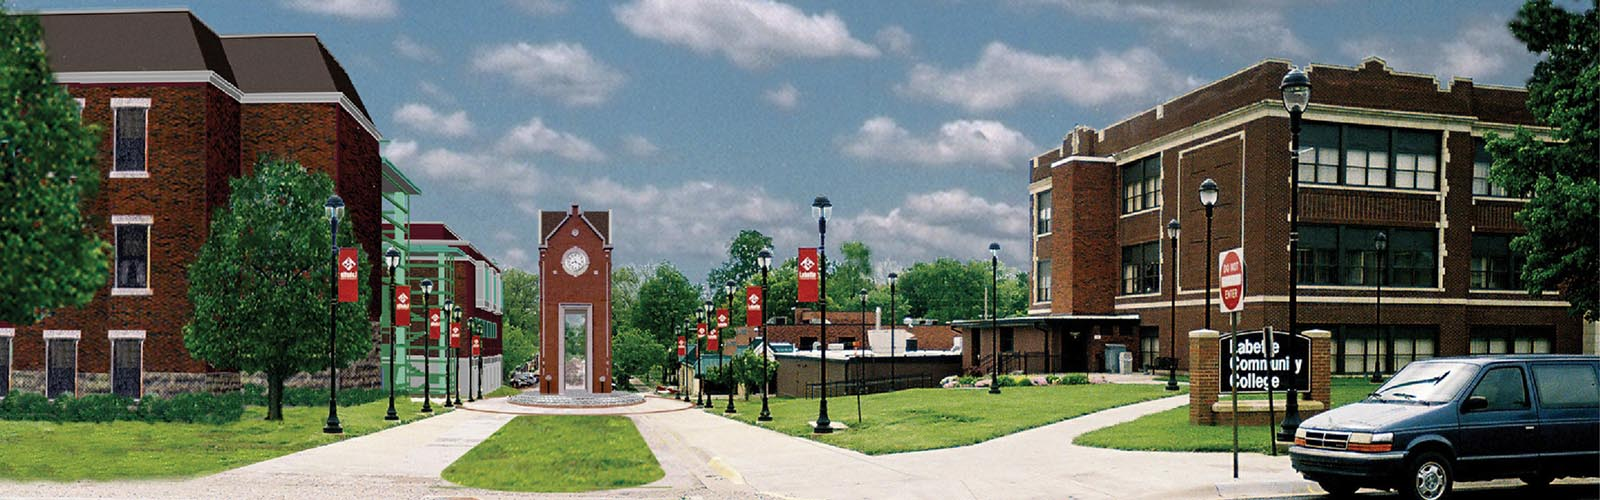 Labette Community College – Master Plan 2